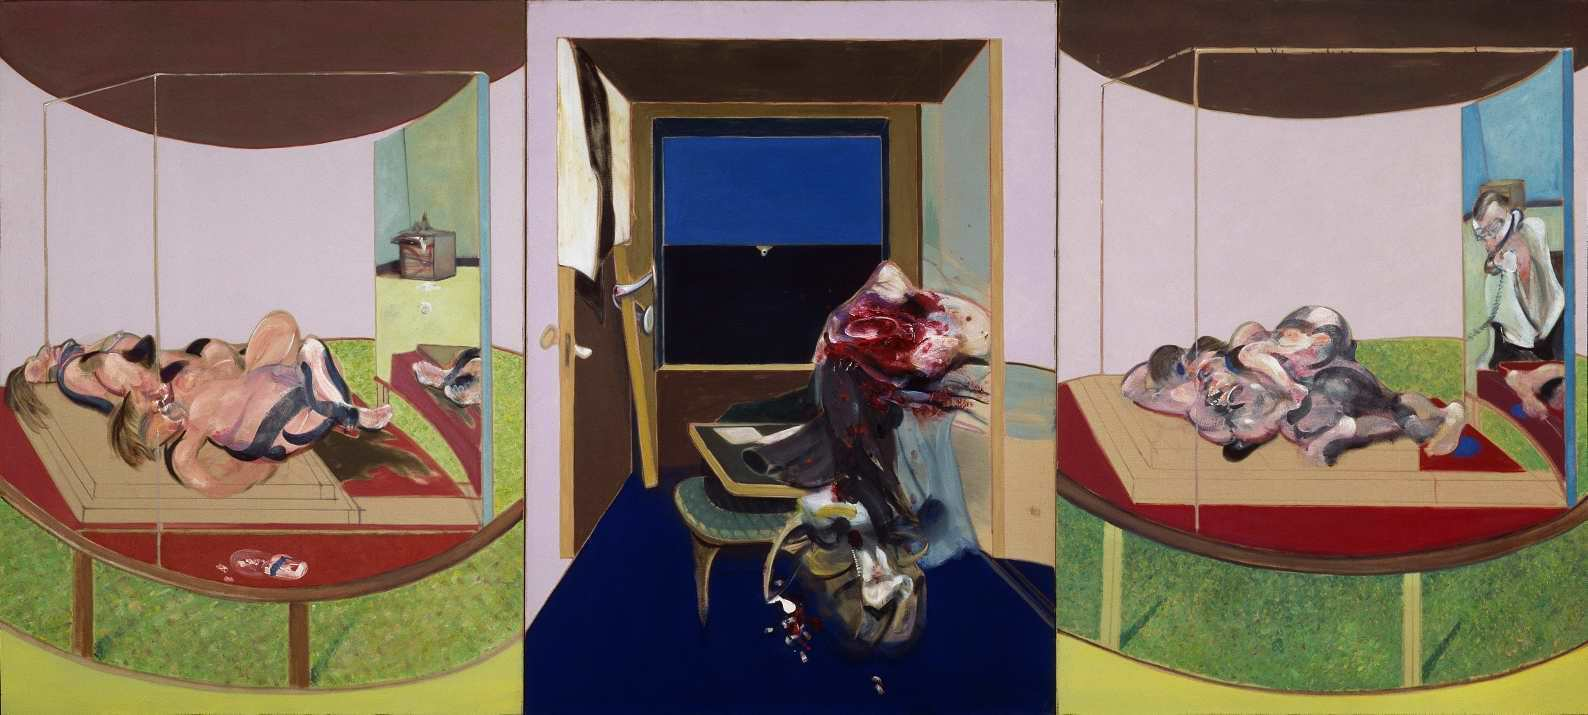 Francis Bacon, Triptychon inspiriert von T.S Elliot's Gedicht Sweeney Agonistes, 1967, Öl auf Leinwand (Hirshhorn Museum and Sculpture Garden, Smithsonian Institution, Washington DC, gift of the Joseph H. Hirshhorn Foundation, 1972).